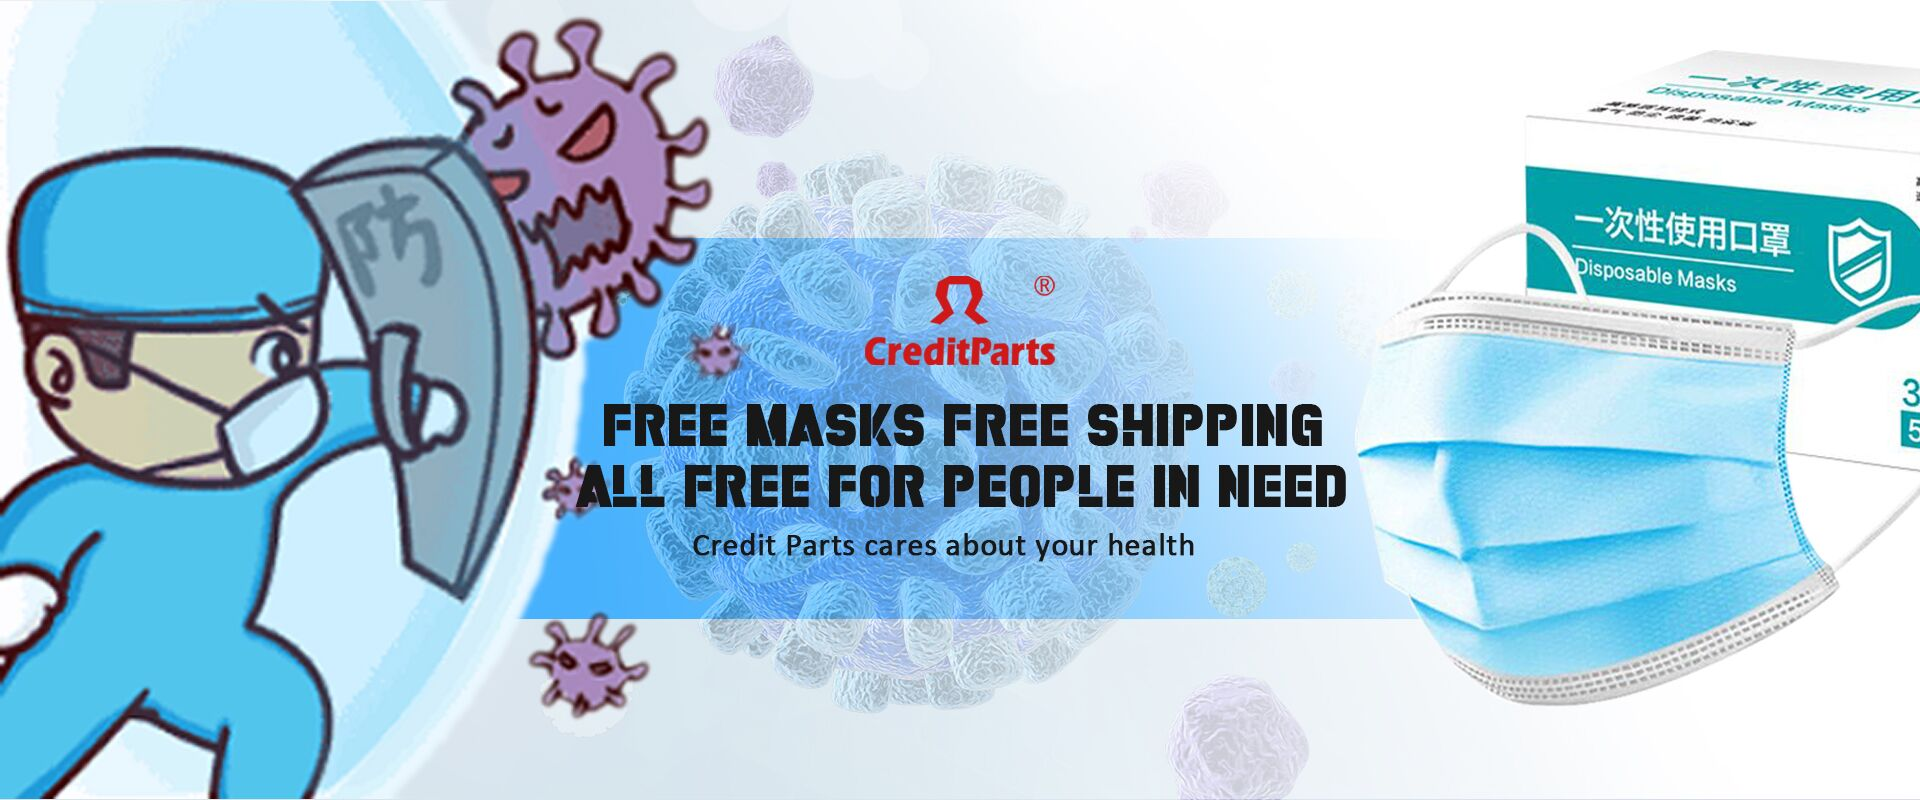 Free Masks For People In Need ,Credit Parts Cares About Your health .